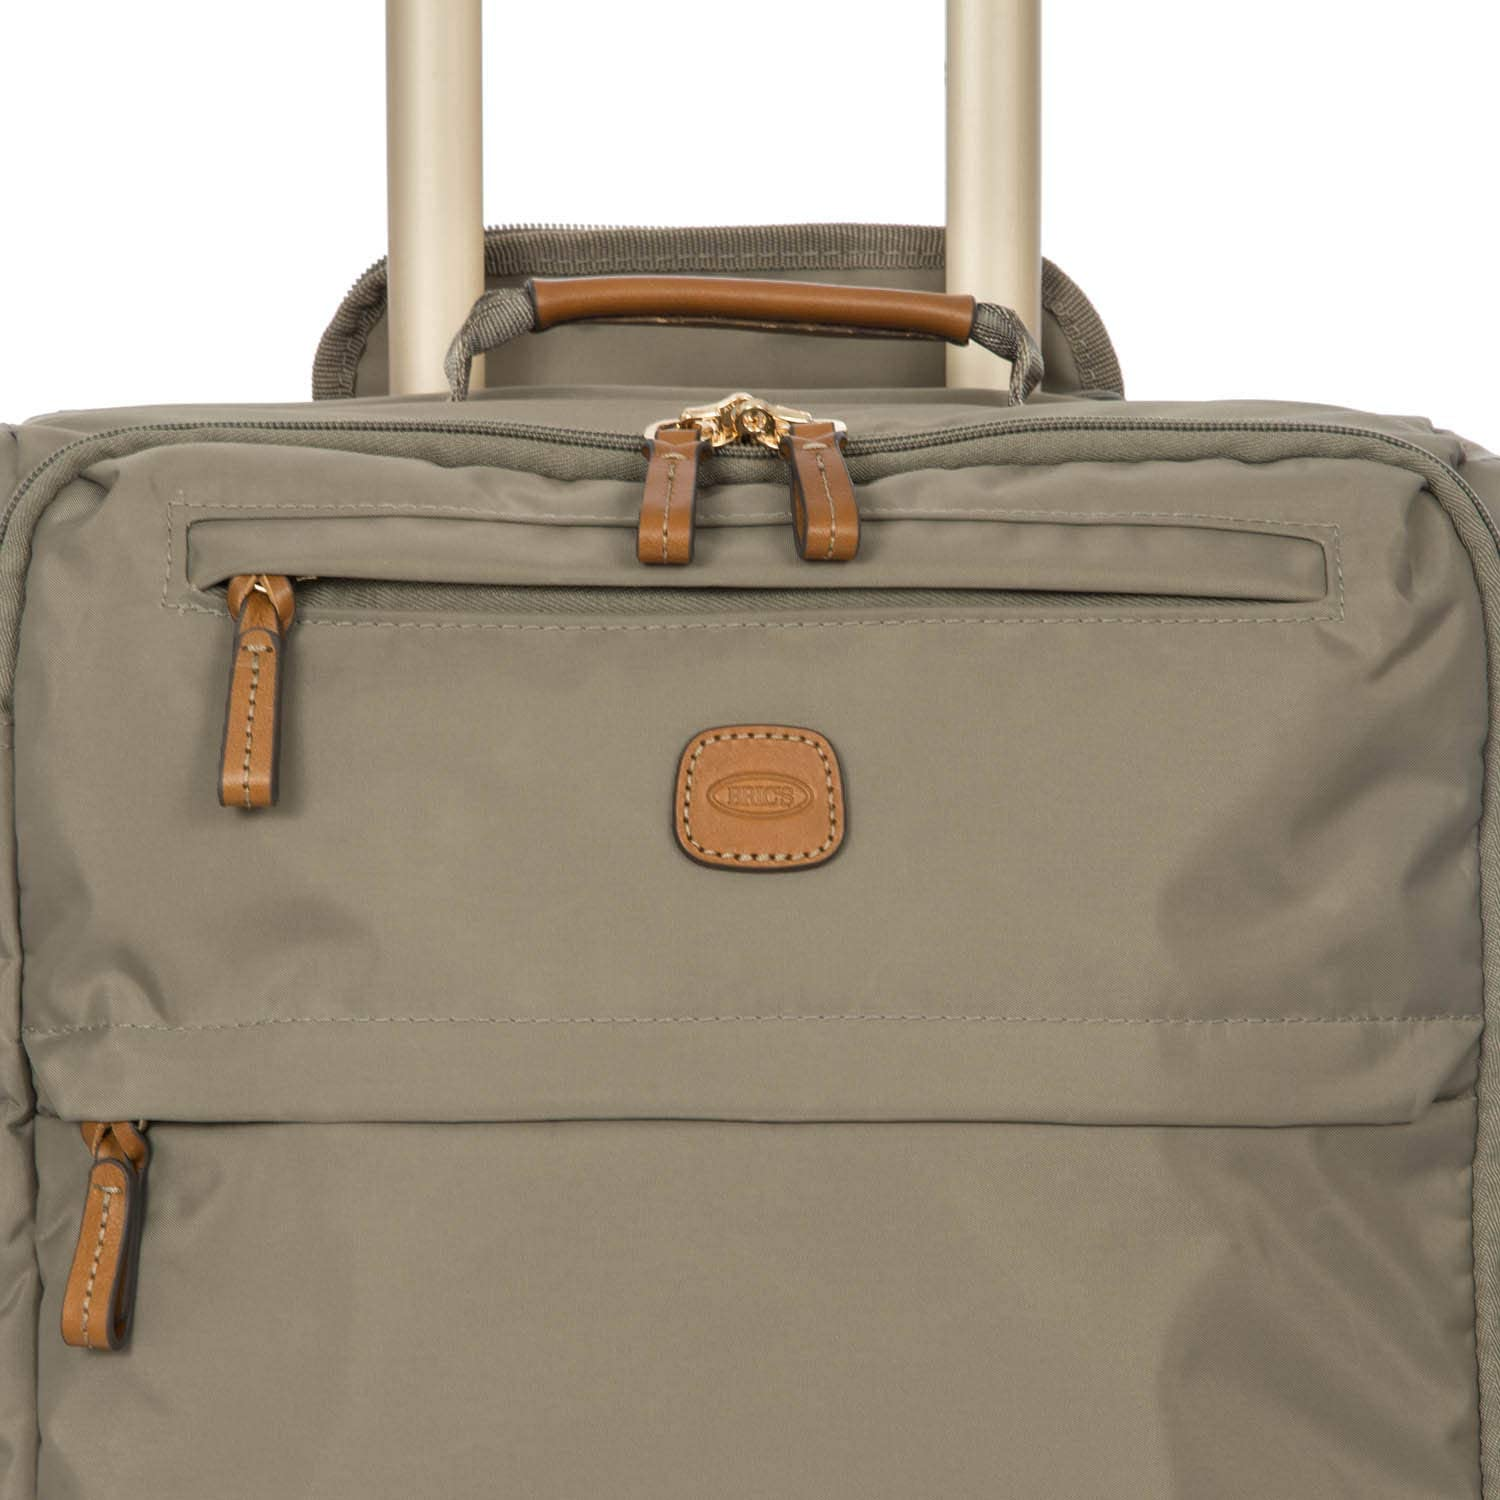 Brics X-Bag//x-Travel 21 Inch International Carry On Spinner W//Frame Dove Grey